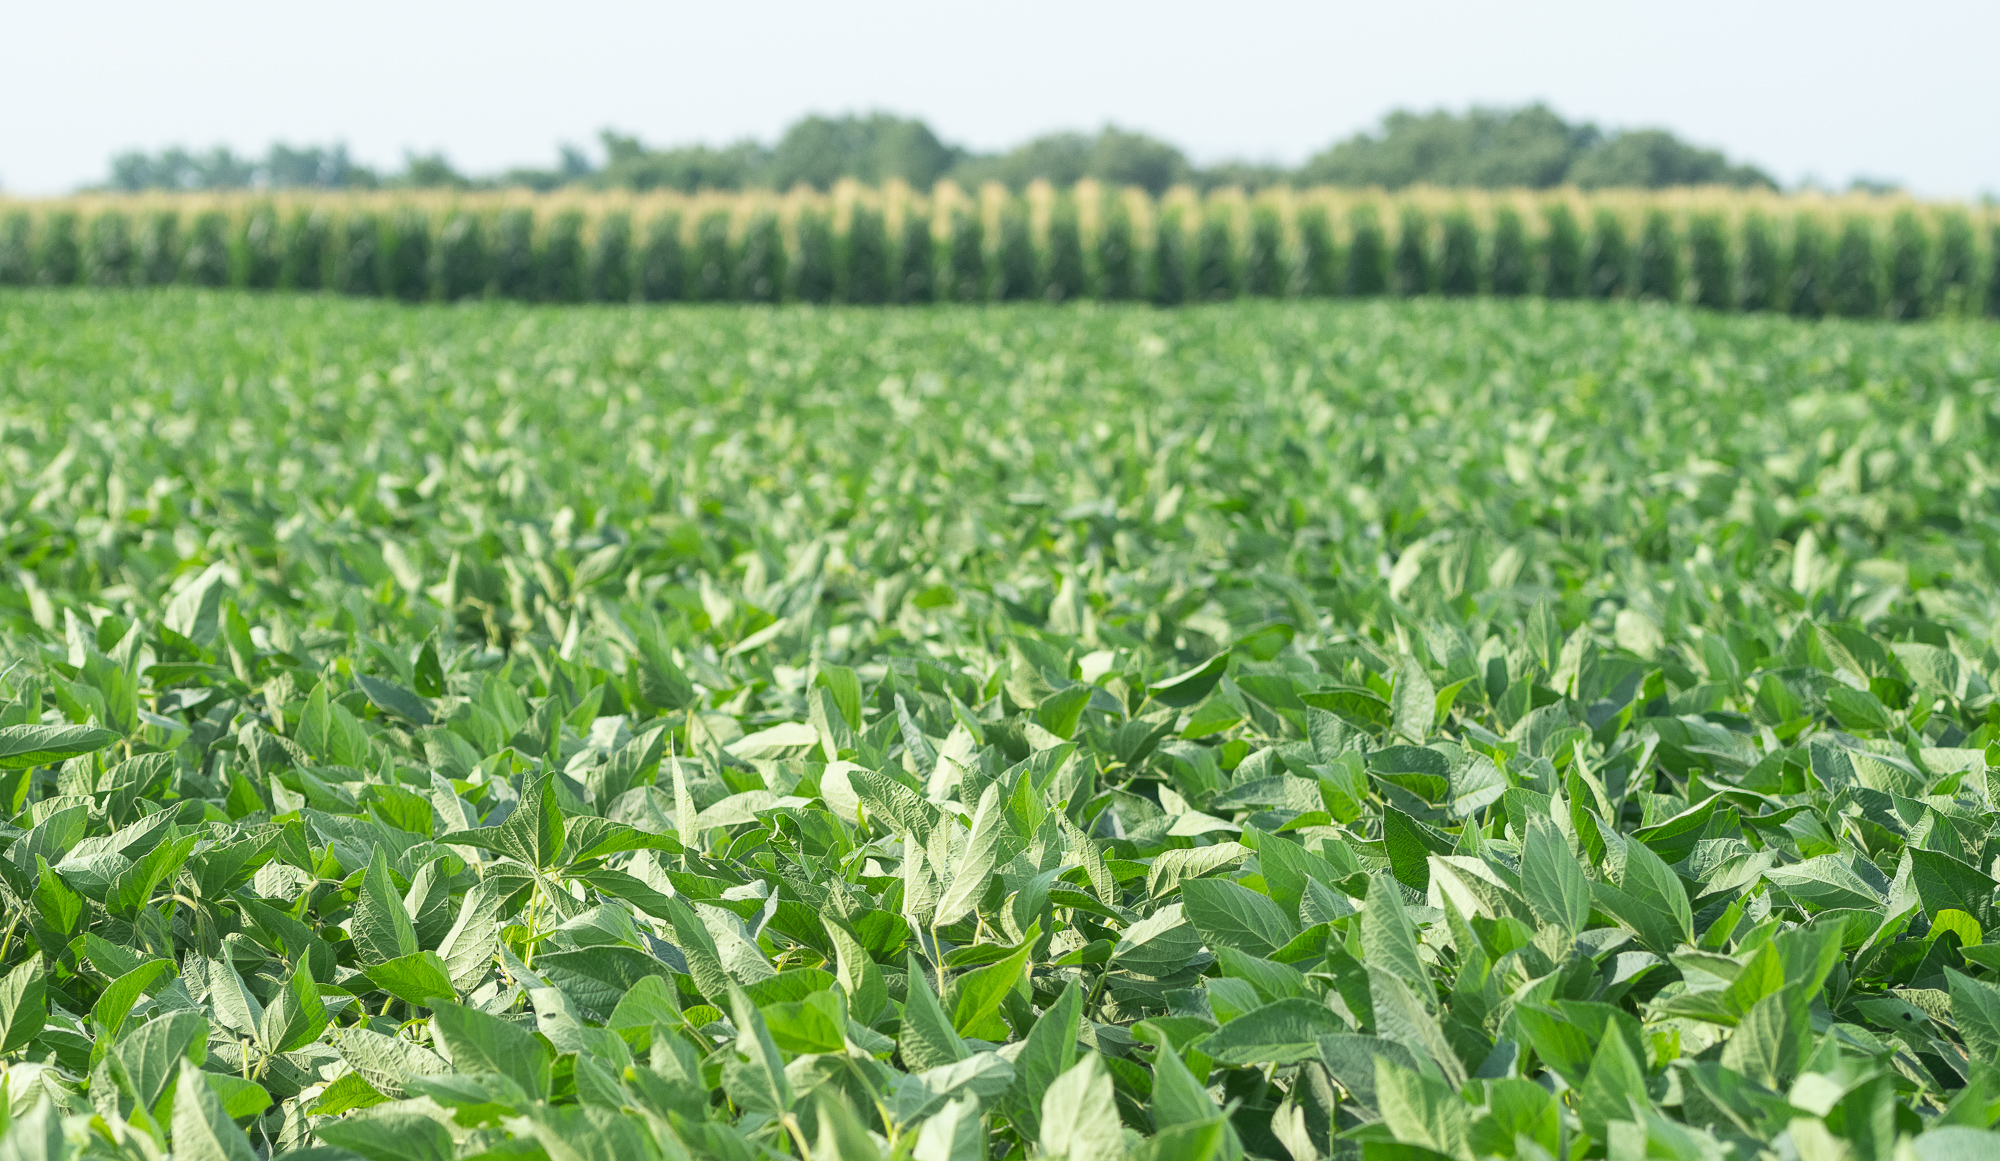 Rows of green soybean plants